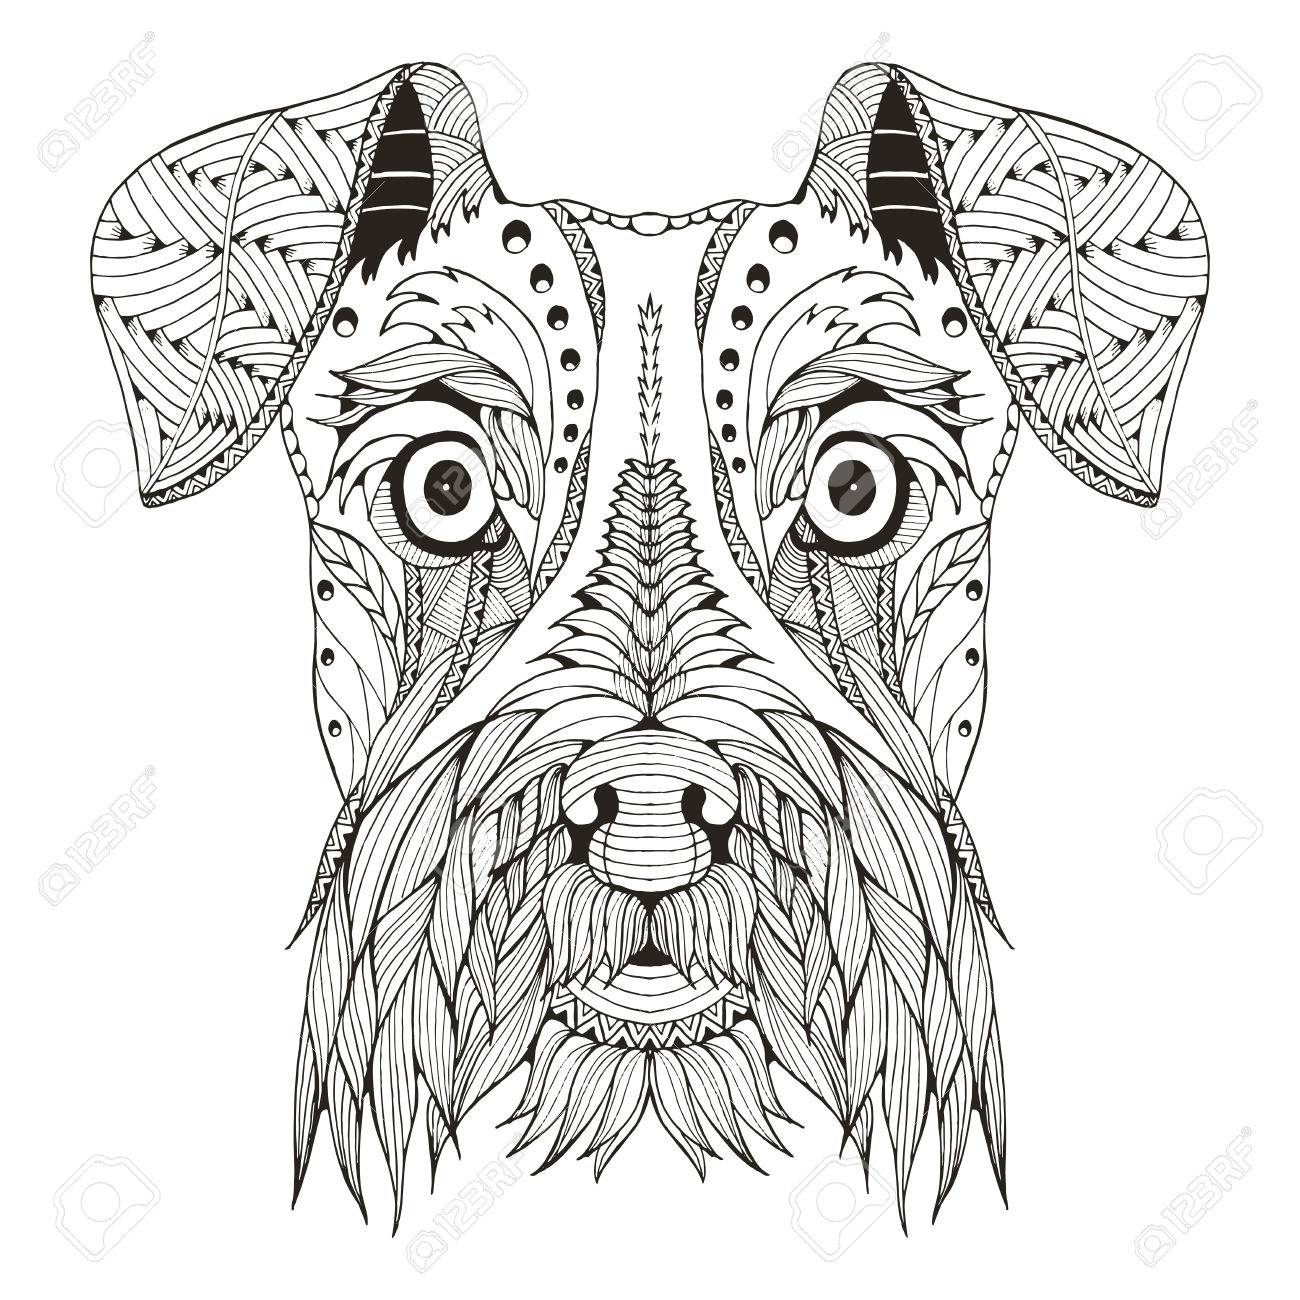 1300x1300 Schnauzer Dog Head Zentangle Stylized, Vector, Illustration